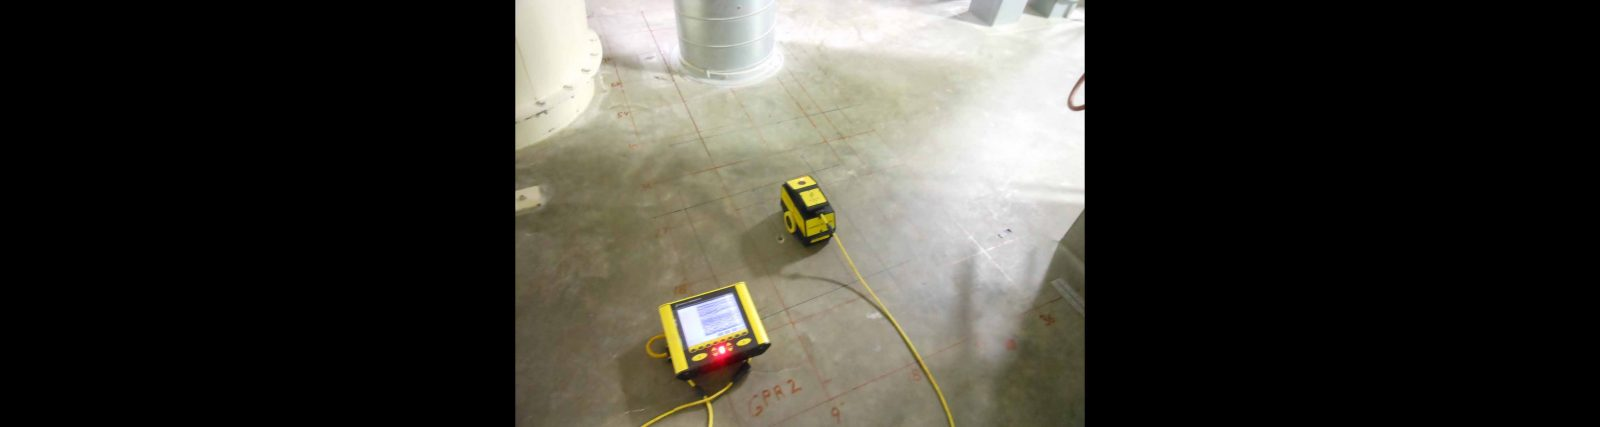 Concrete Scan For Post Tension Cables